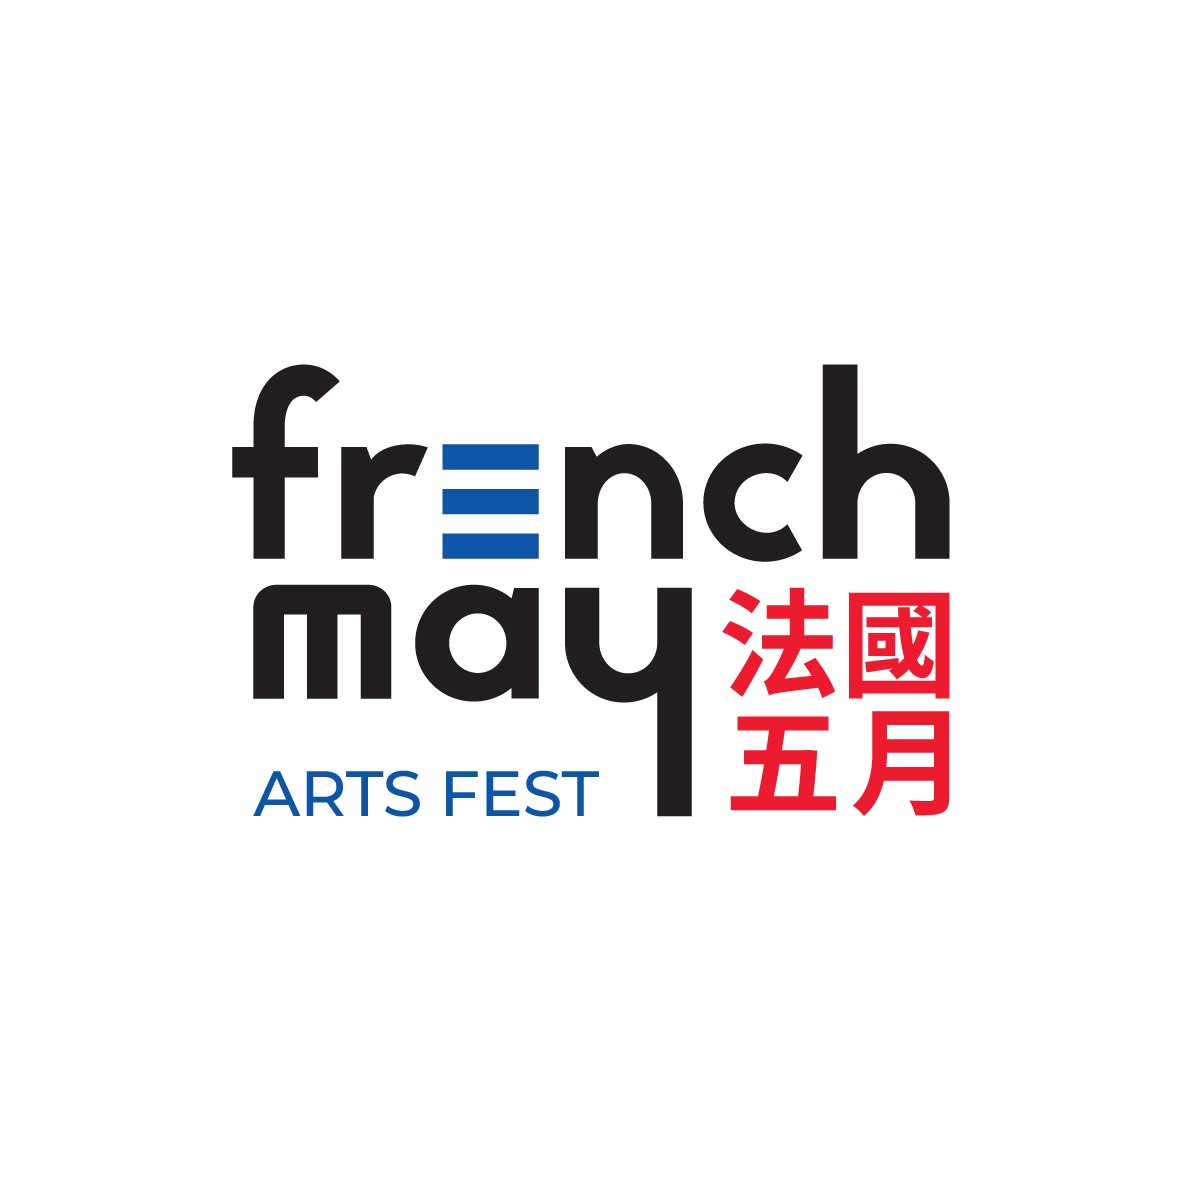 Association Culturelle France Hong Kong